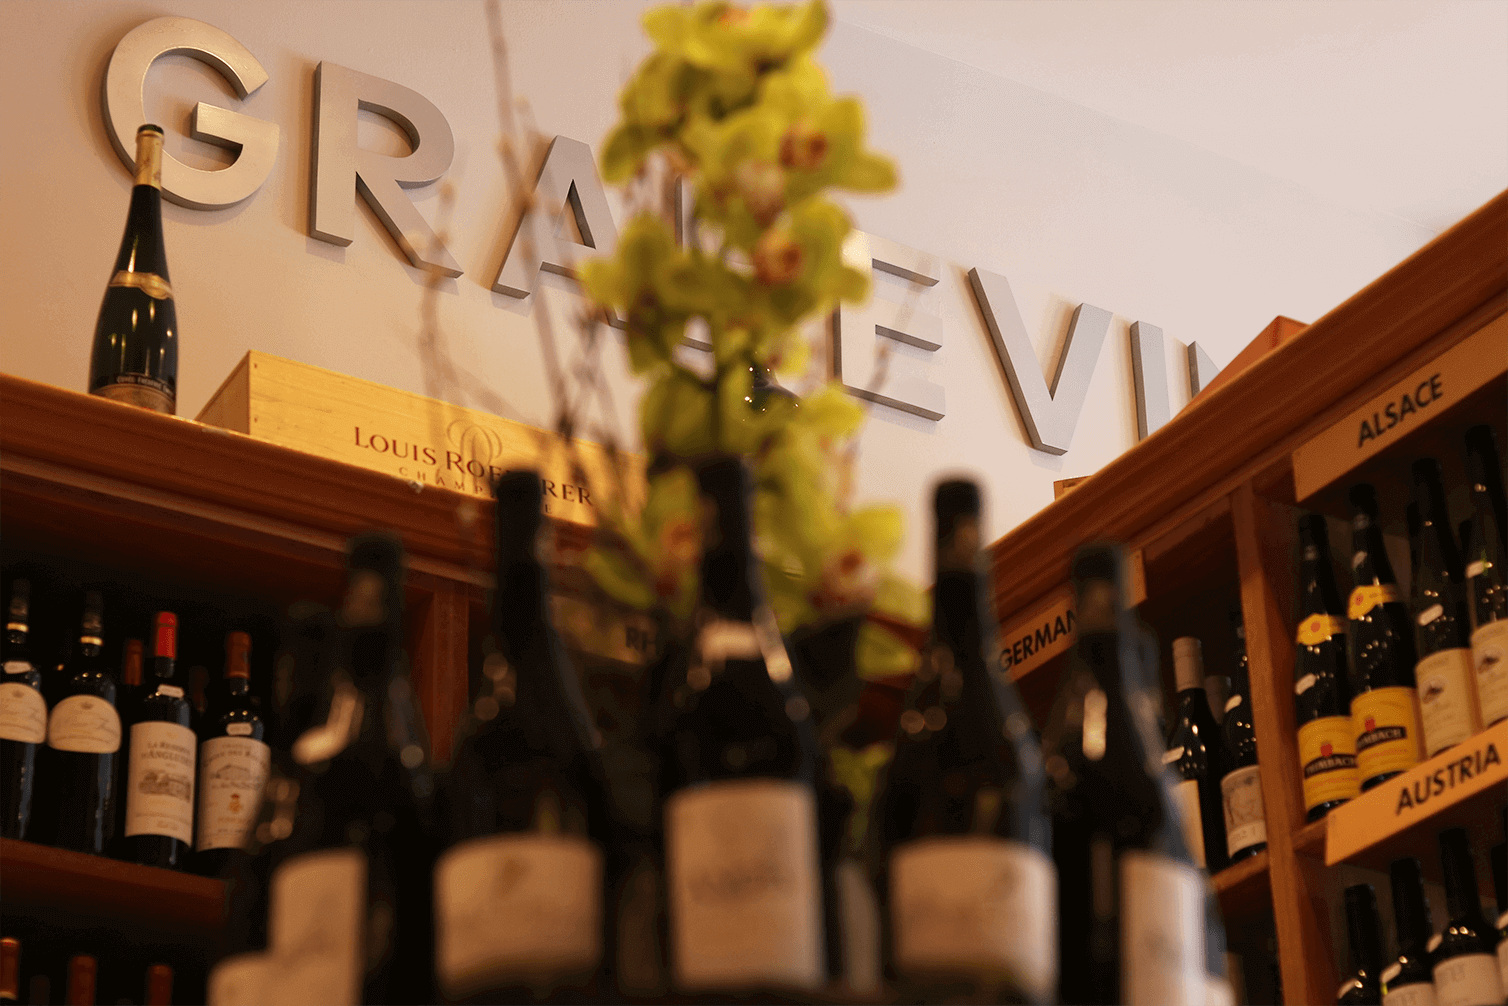 Grapevine Dalkey Wine Shop